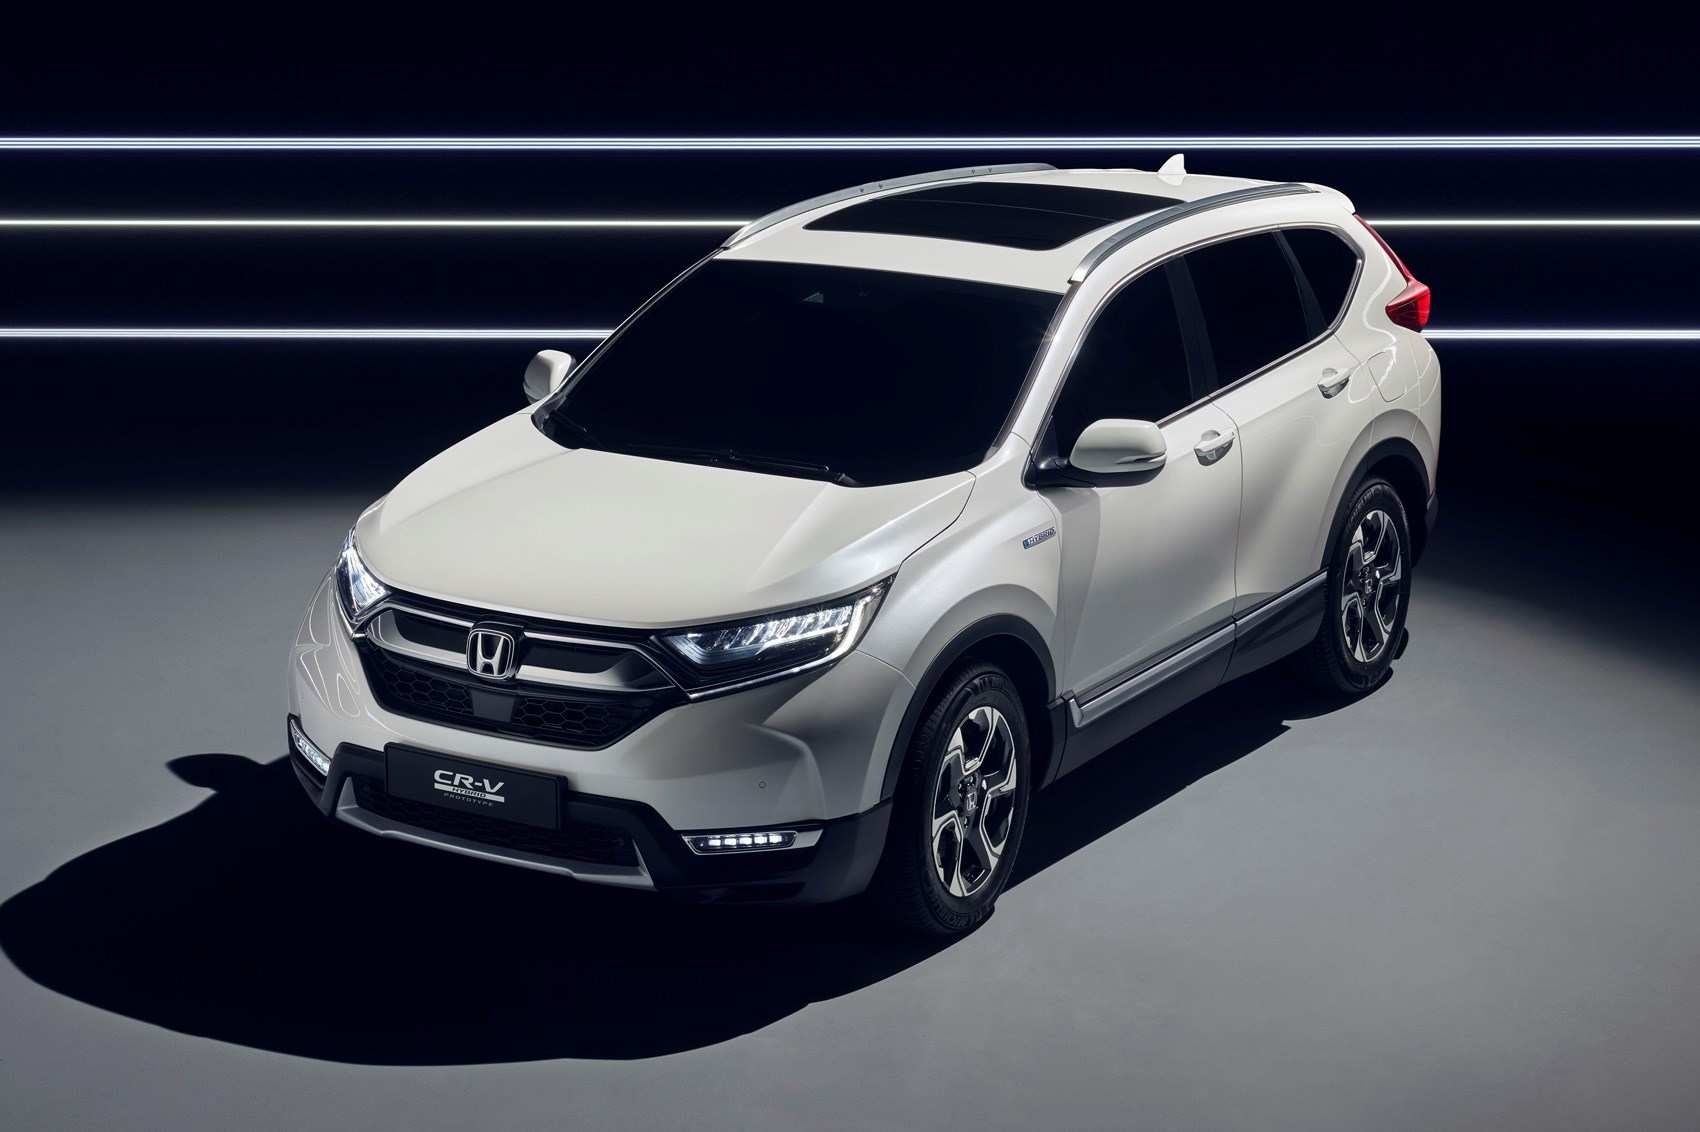 88 Gallery of When Will 2020 Honda Crv Be Released Style for When Will 2020 Honda Crv Be Released